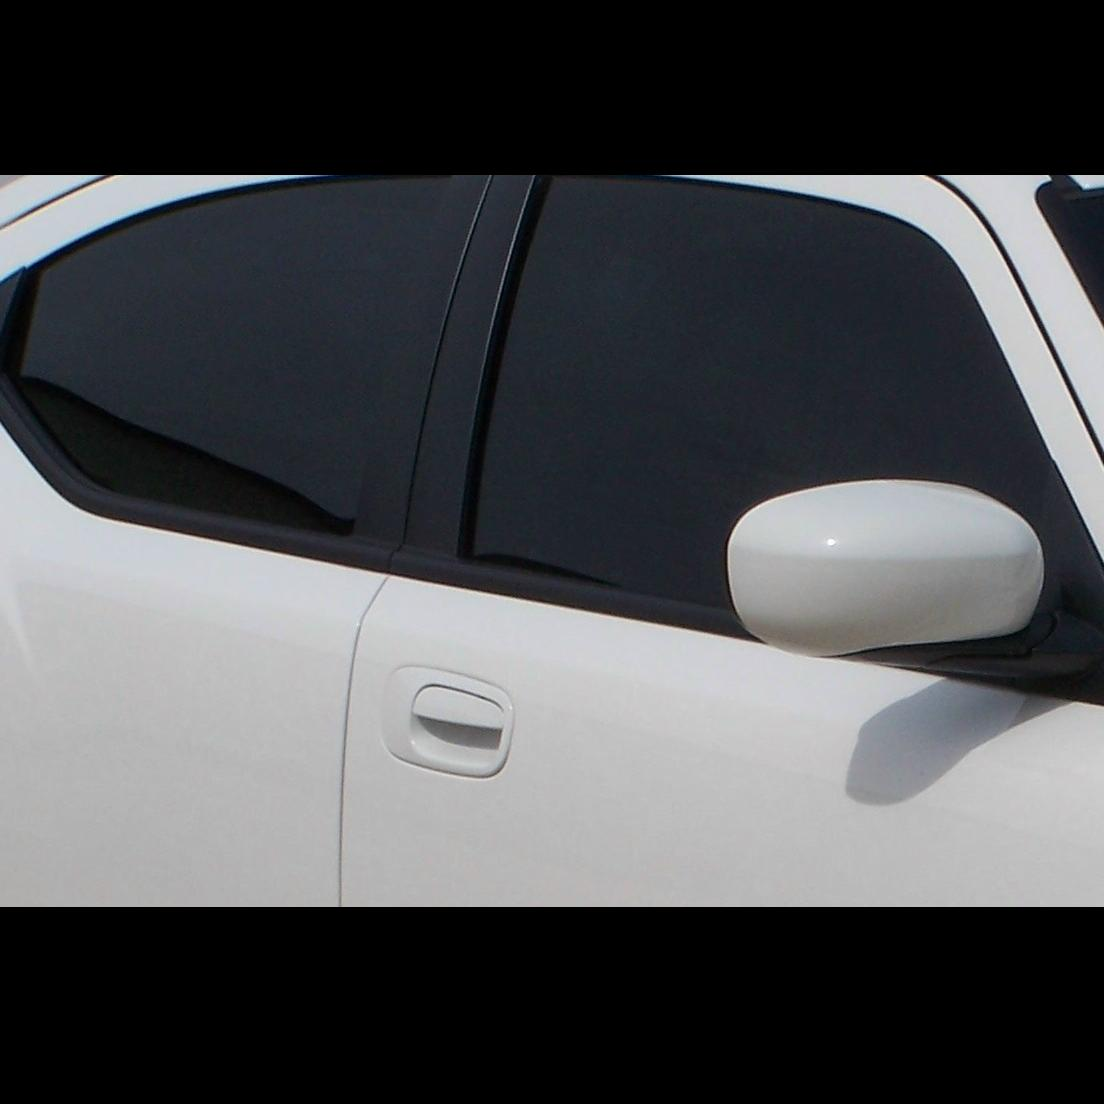 Tint off from window